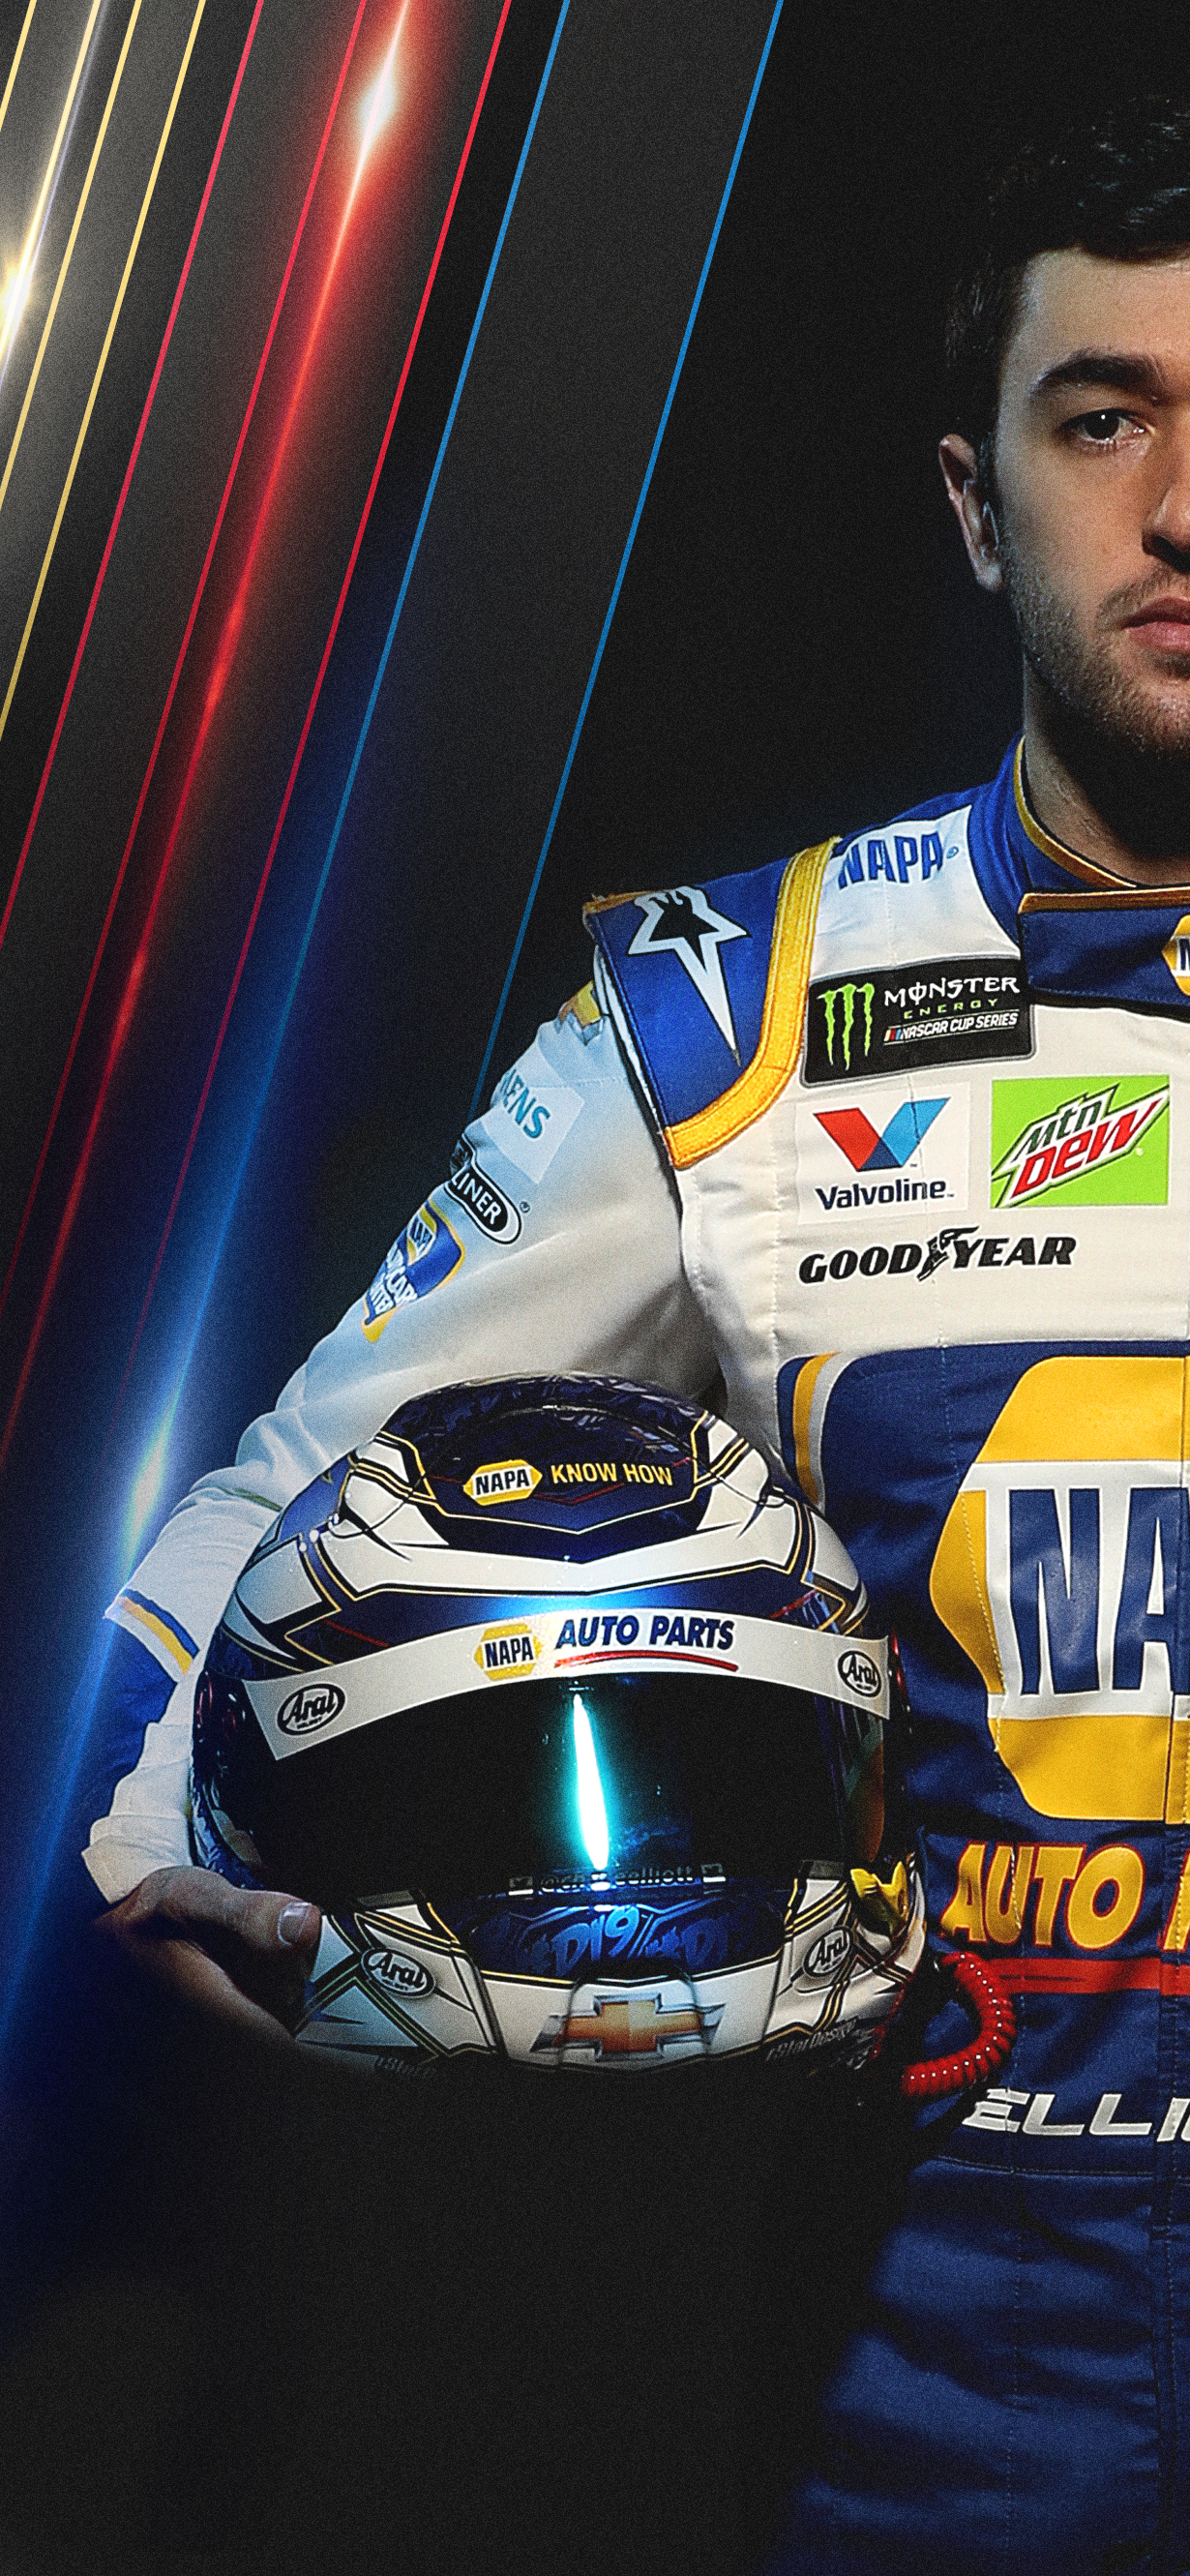 Racing Car Live Wallpaper Android 2019 Nascar Wallpapers Official Site Of Nascar